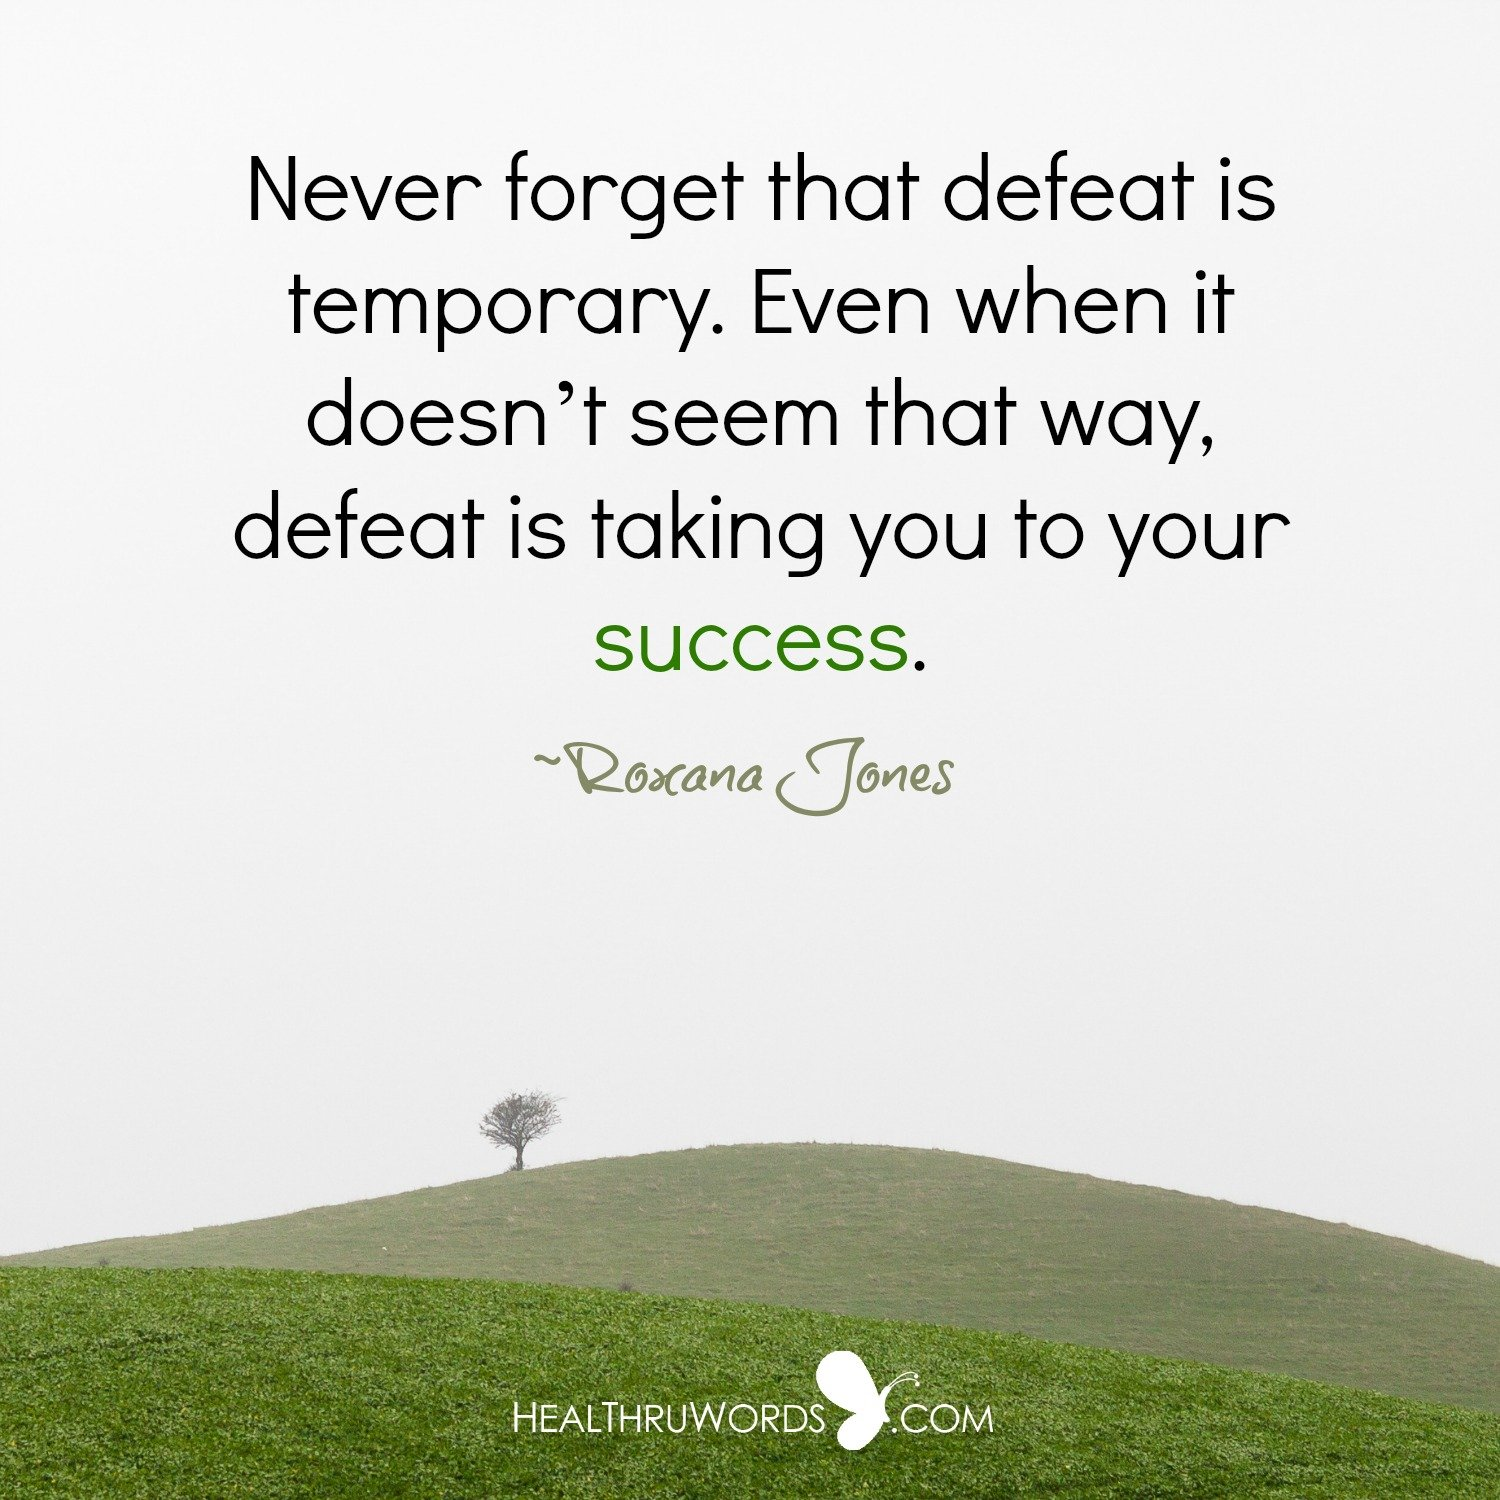 Inspirational Image: After Defeat comes Success